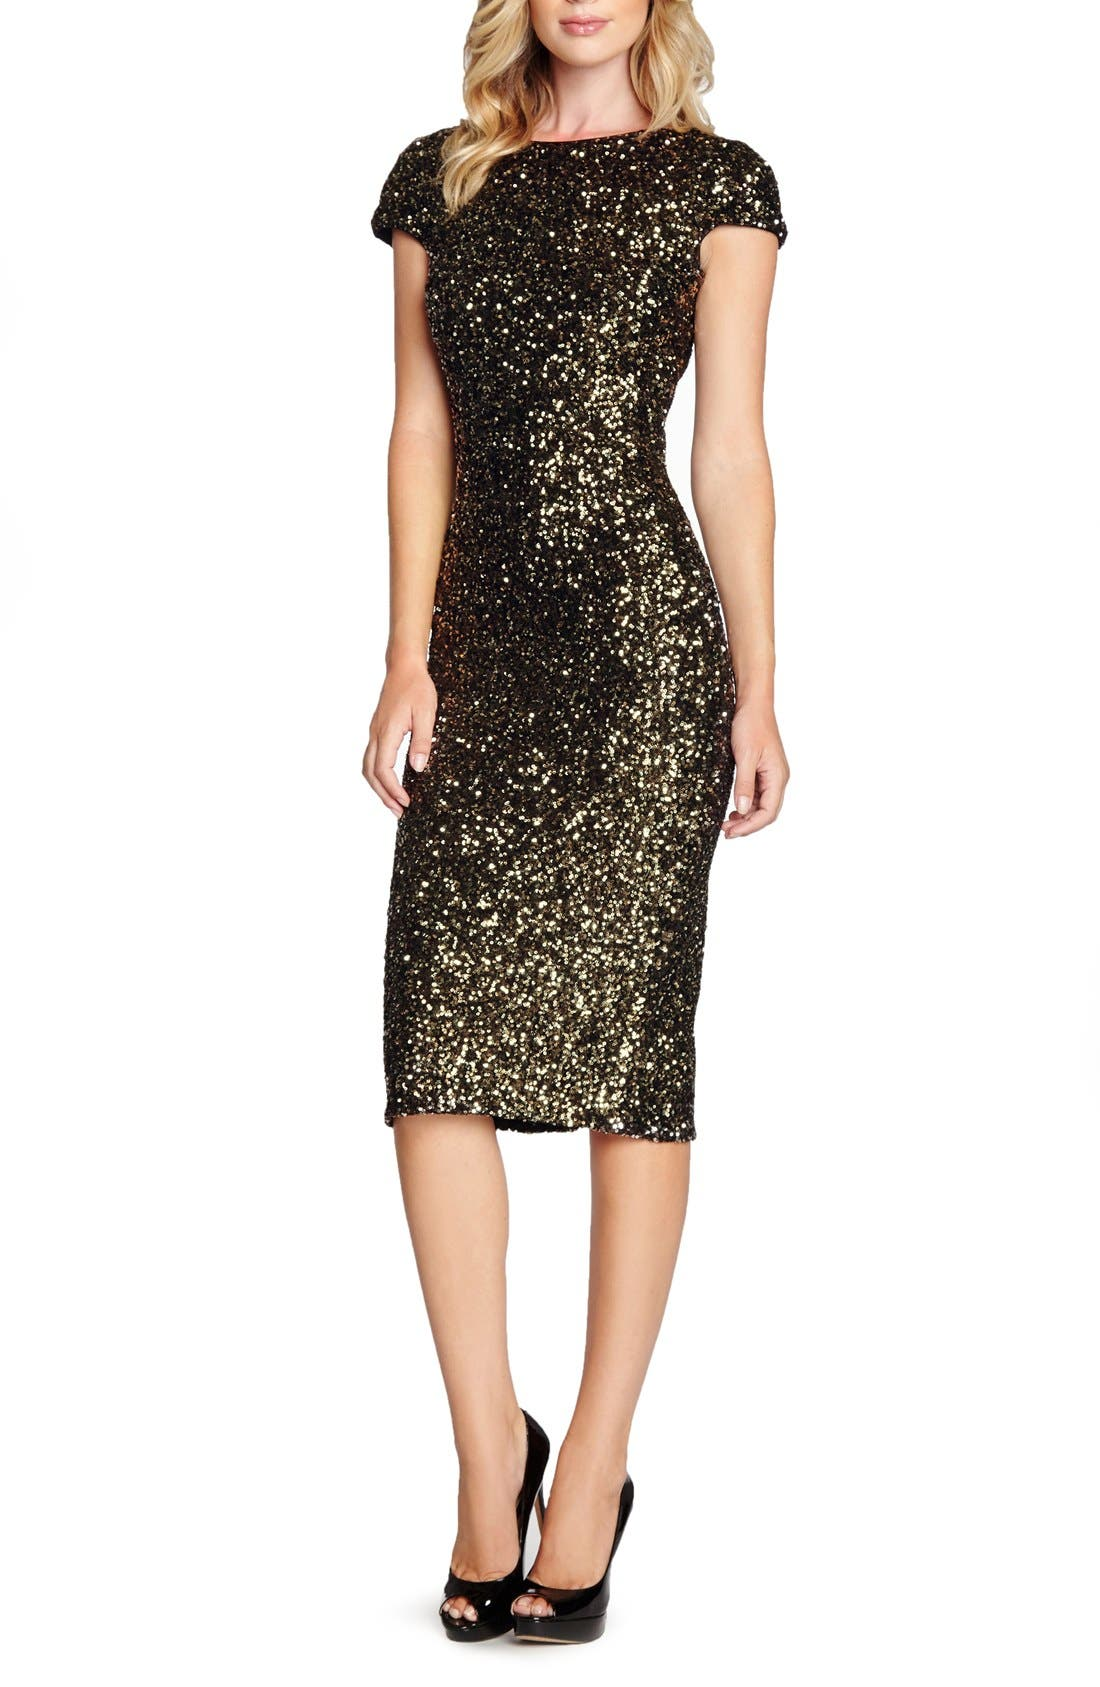 DRESS THE POPULATION Marcella Open Back Sequin Body-Con Dress